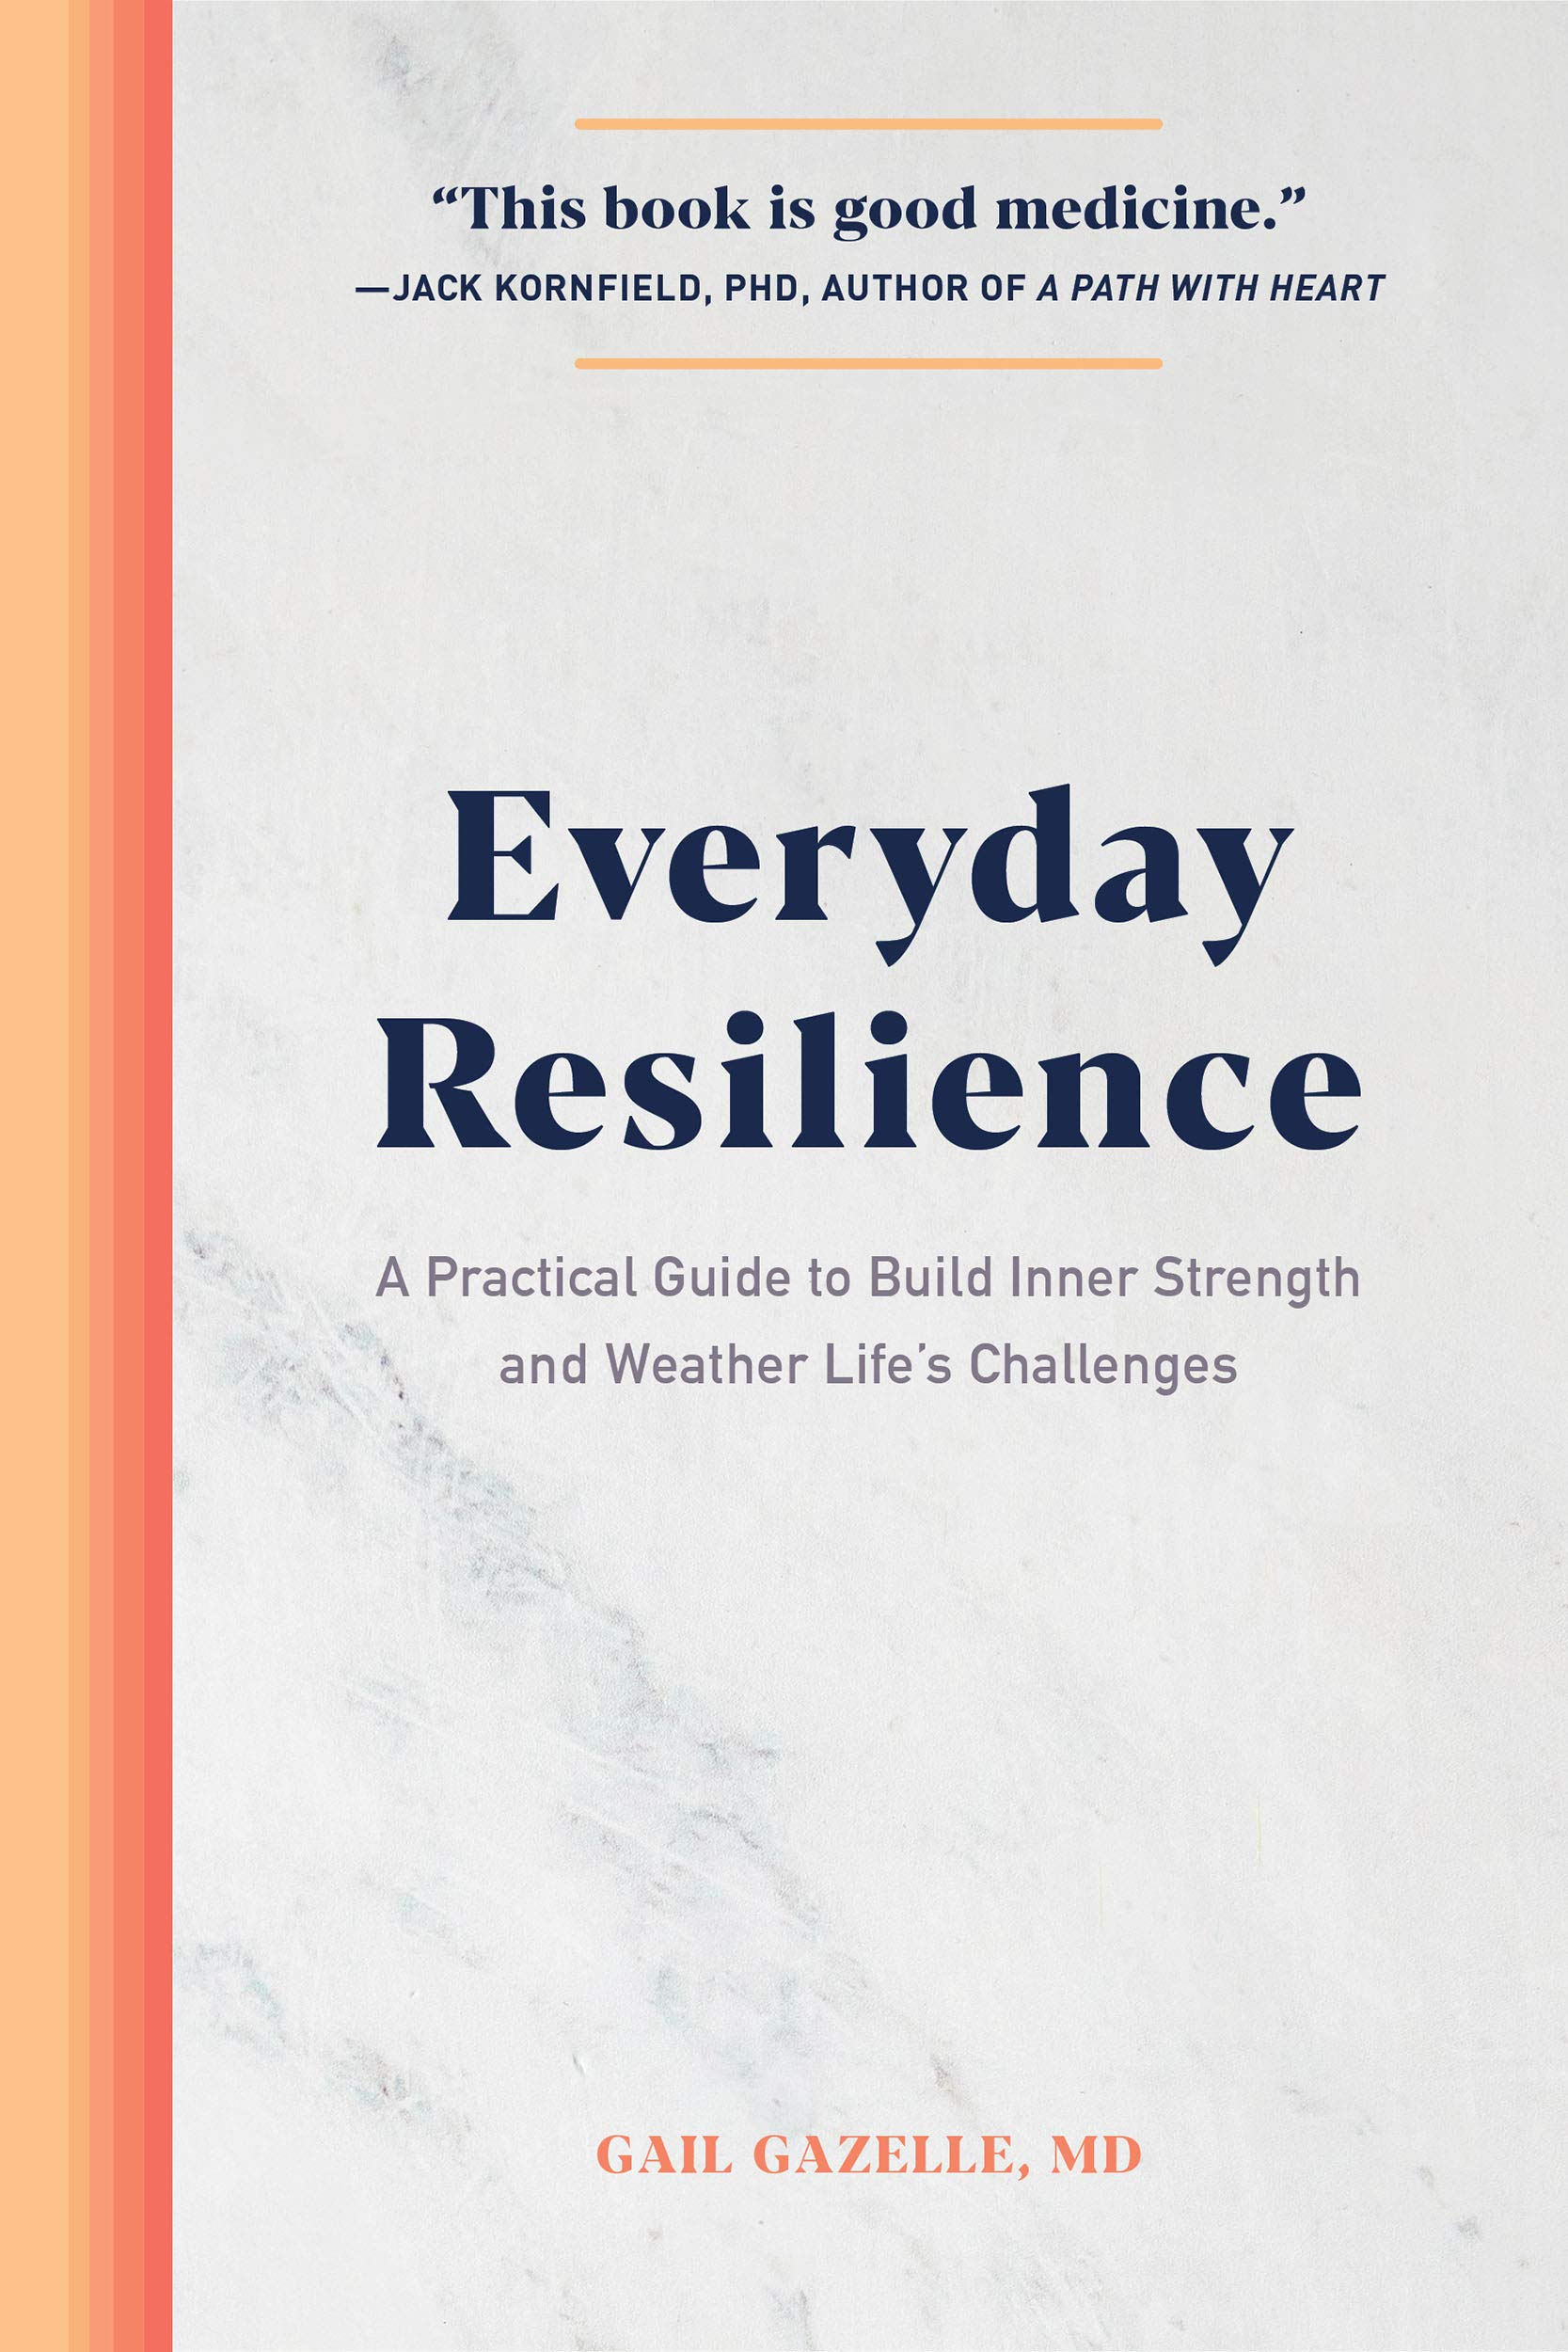 Everyday Resilience: A Practical Guide to Build Inner Strength and Weather Life's Challenges